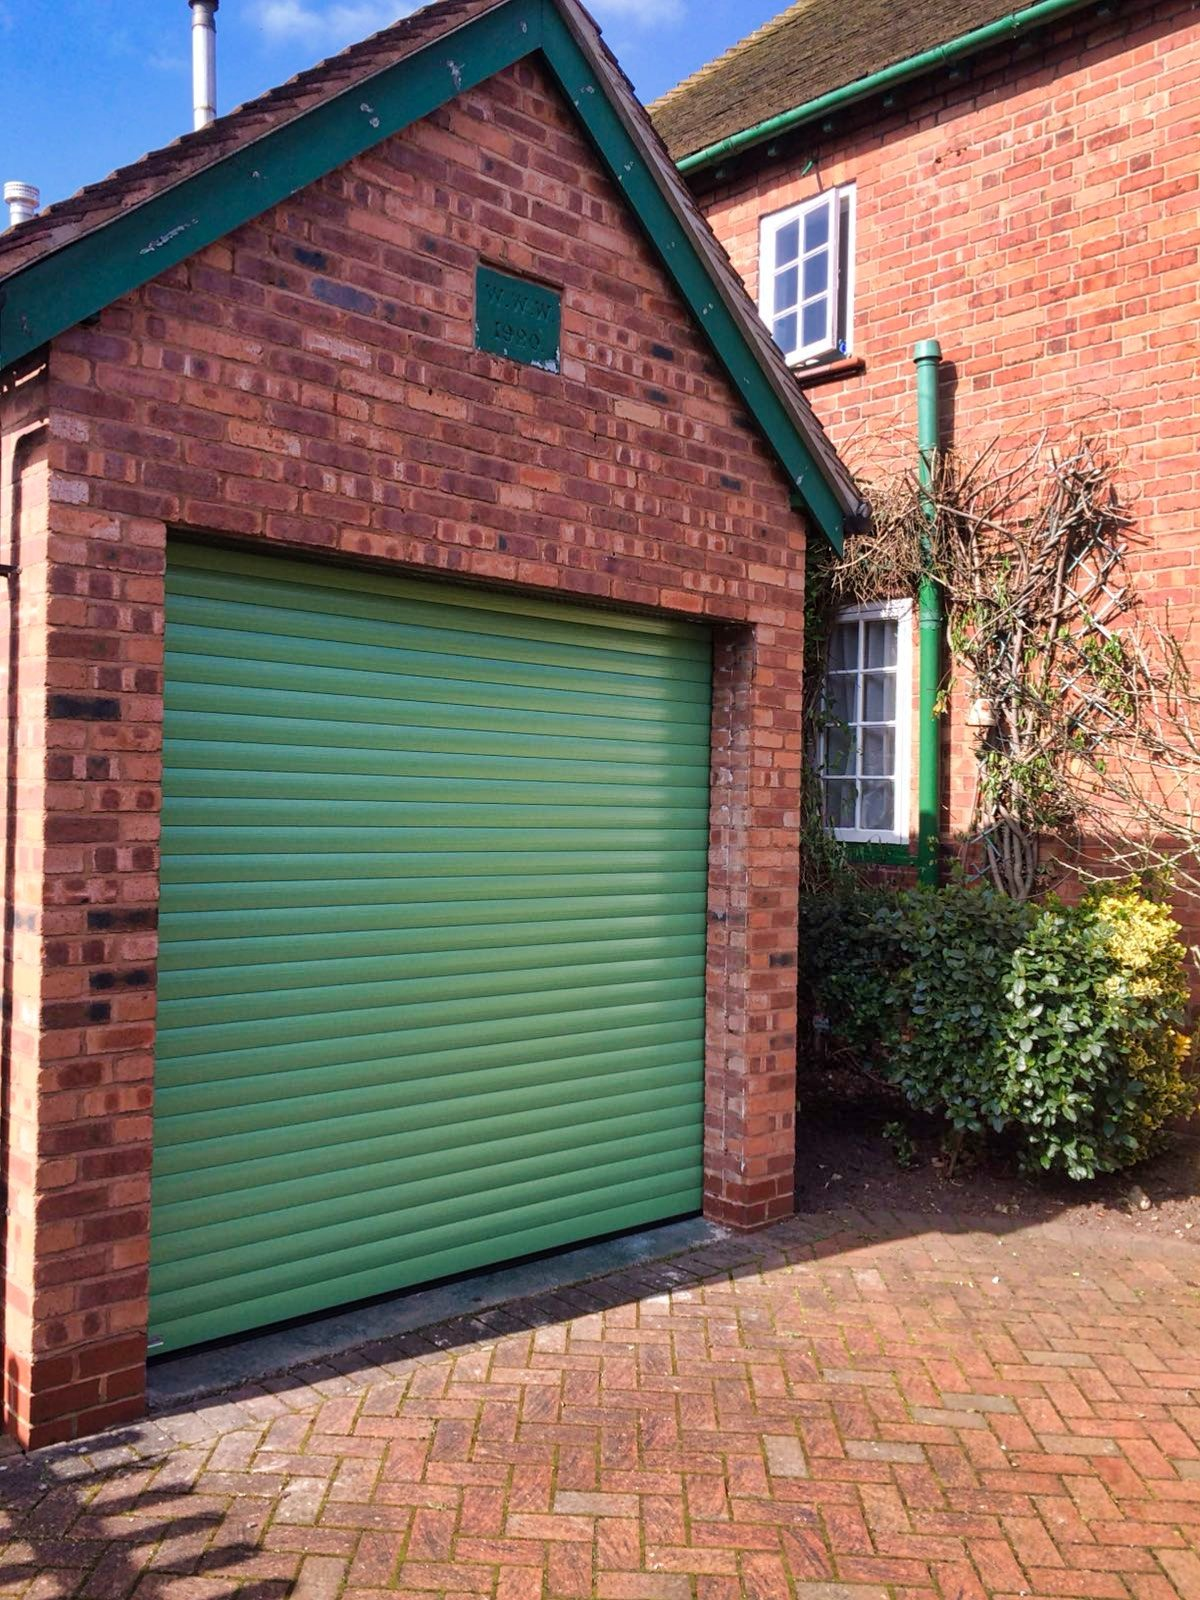 Elite Garage Doors Cannock - Garage Door Repair & Elite Garage Doors - Garage door supply repair and installation